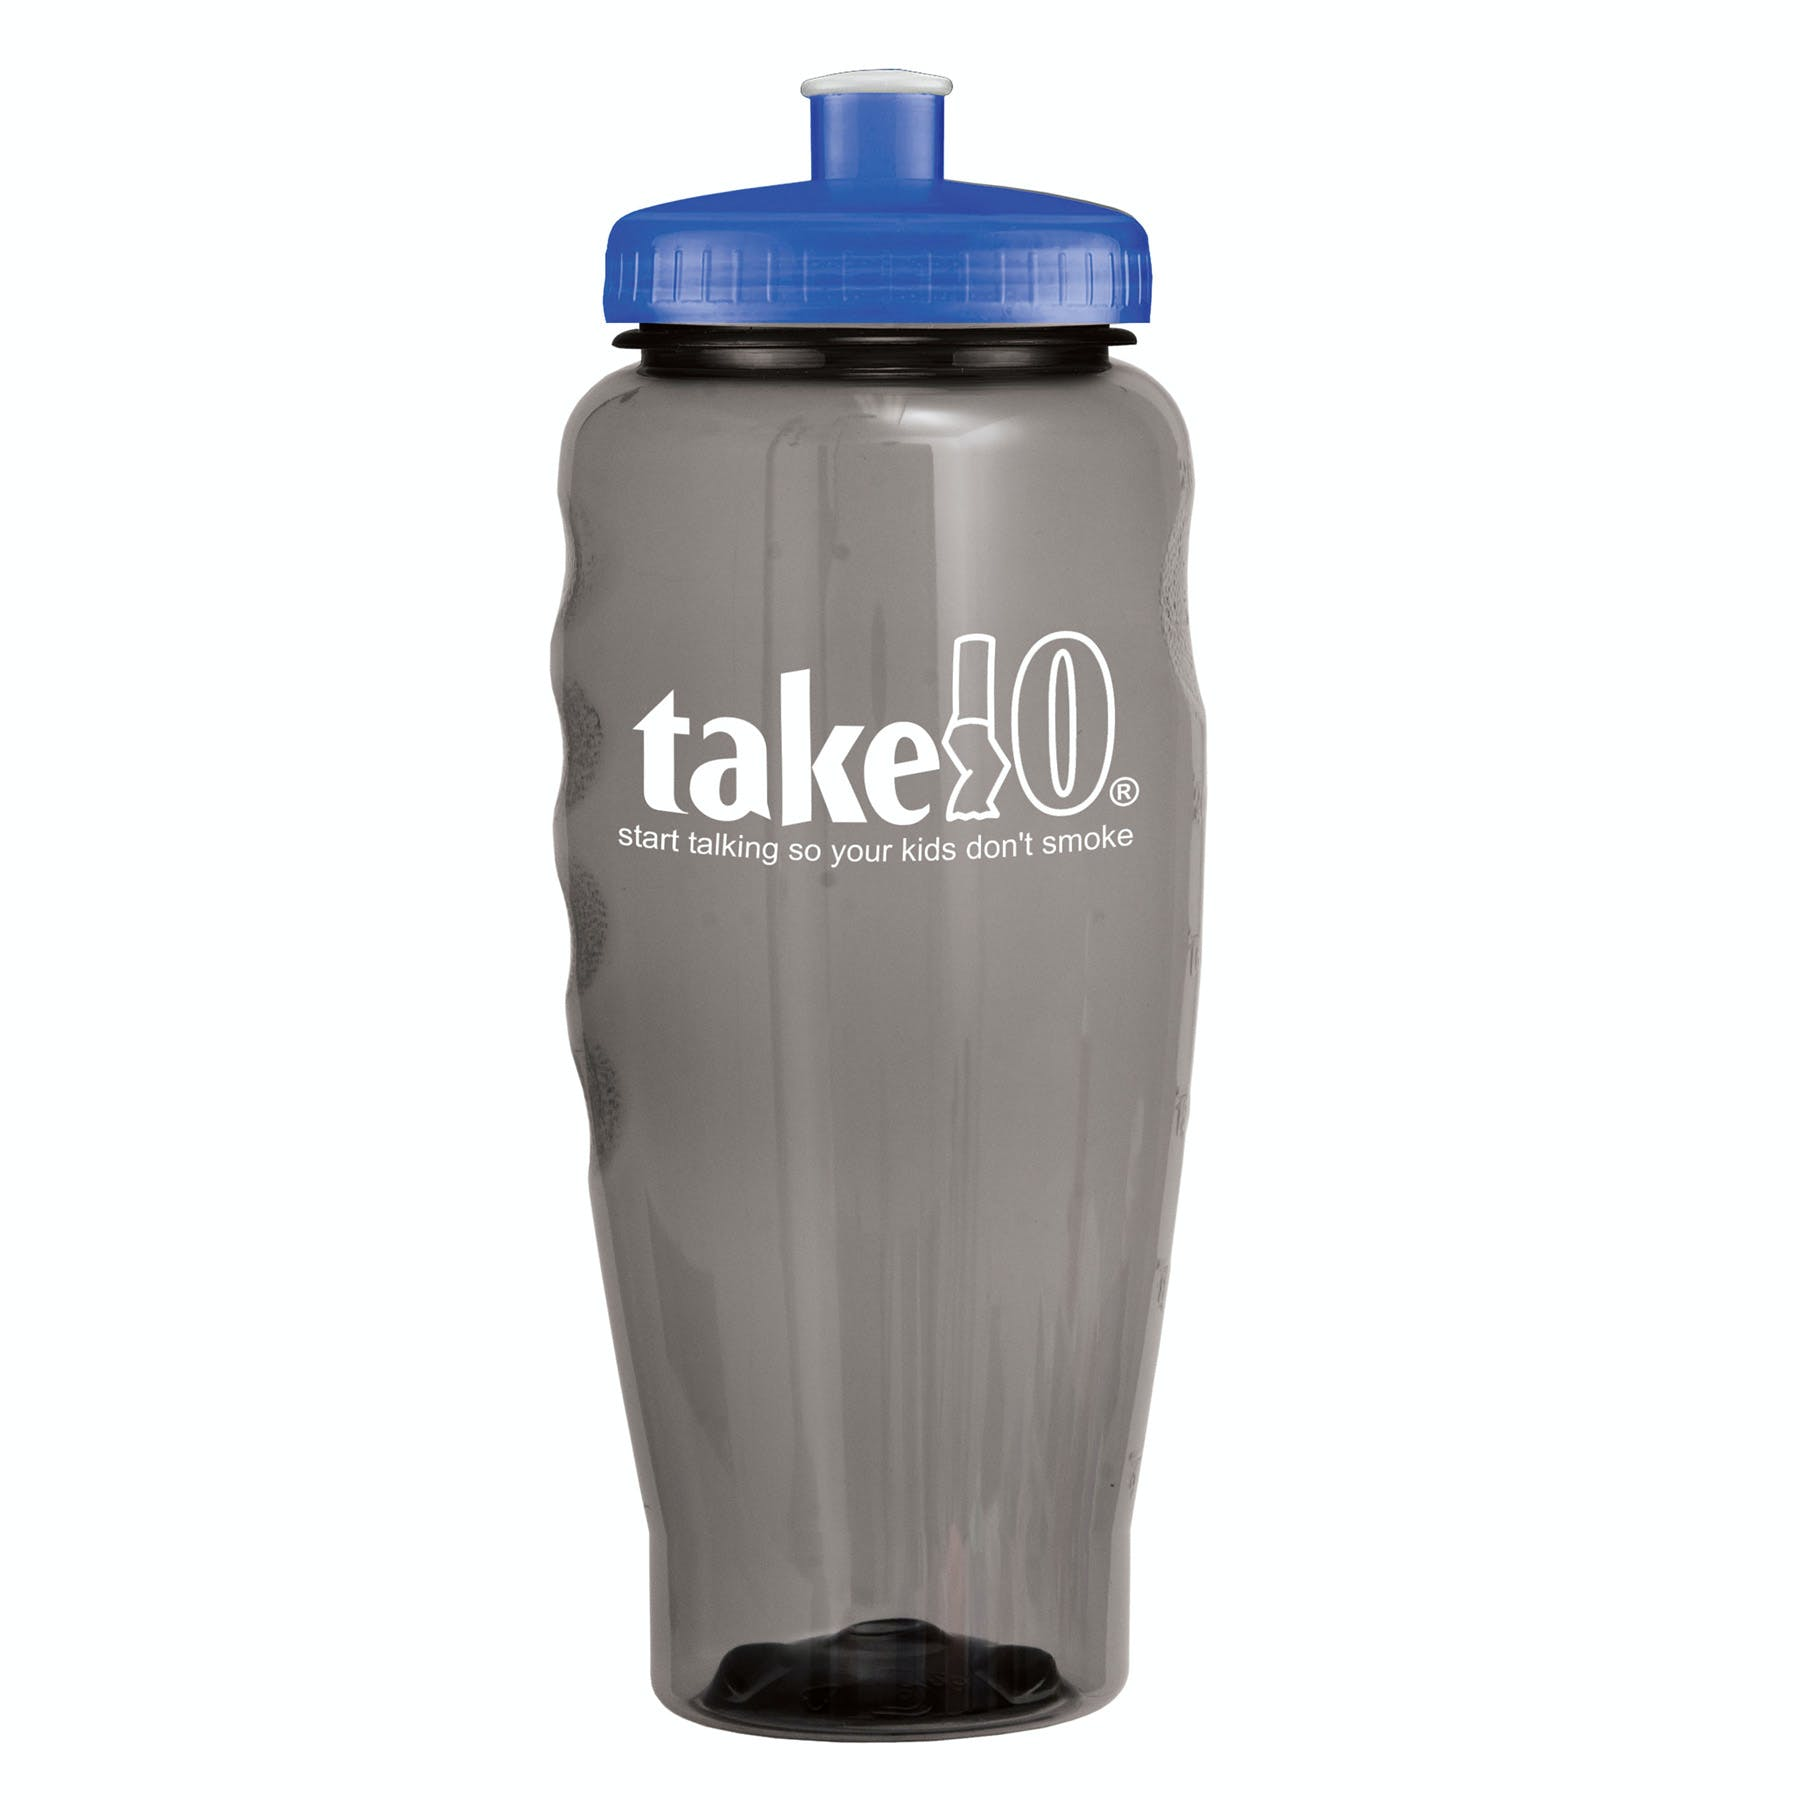 26 Oz. Summit Bottle (Item # WJFQQ-FPRDP) Promotional water bottle sold by InkEasy